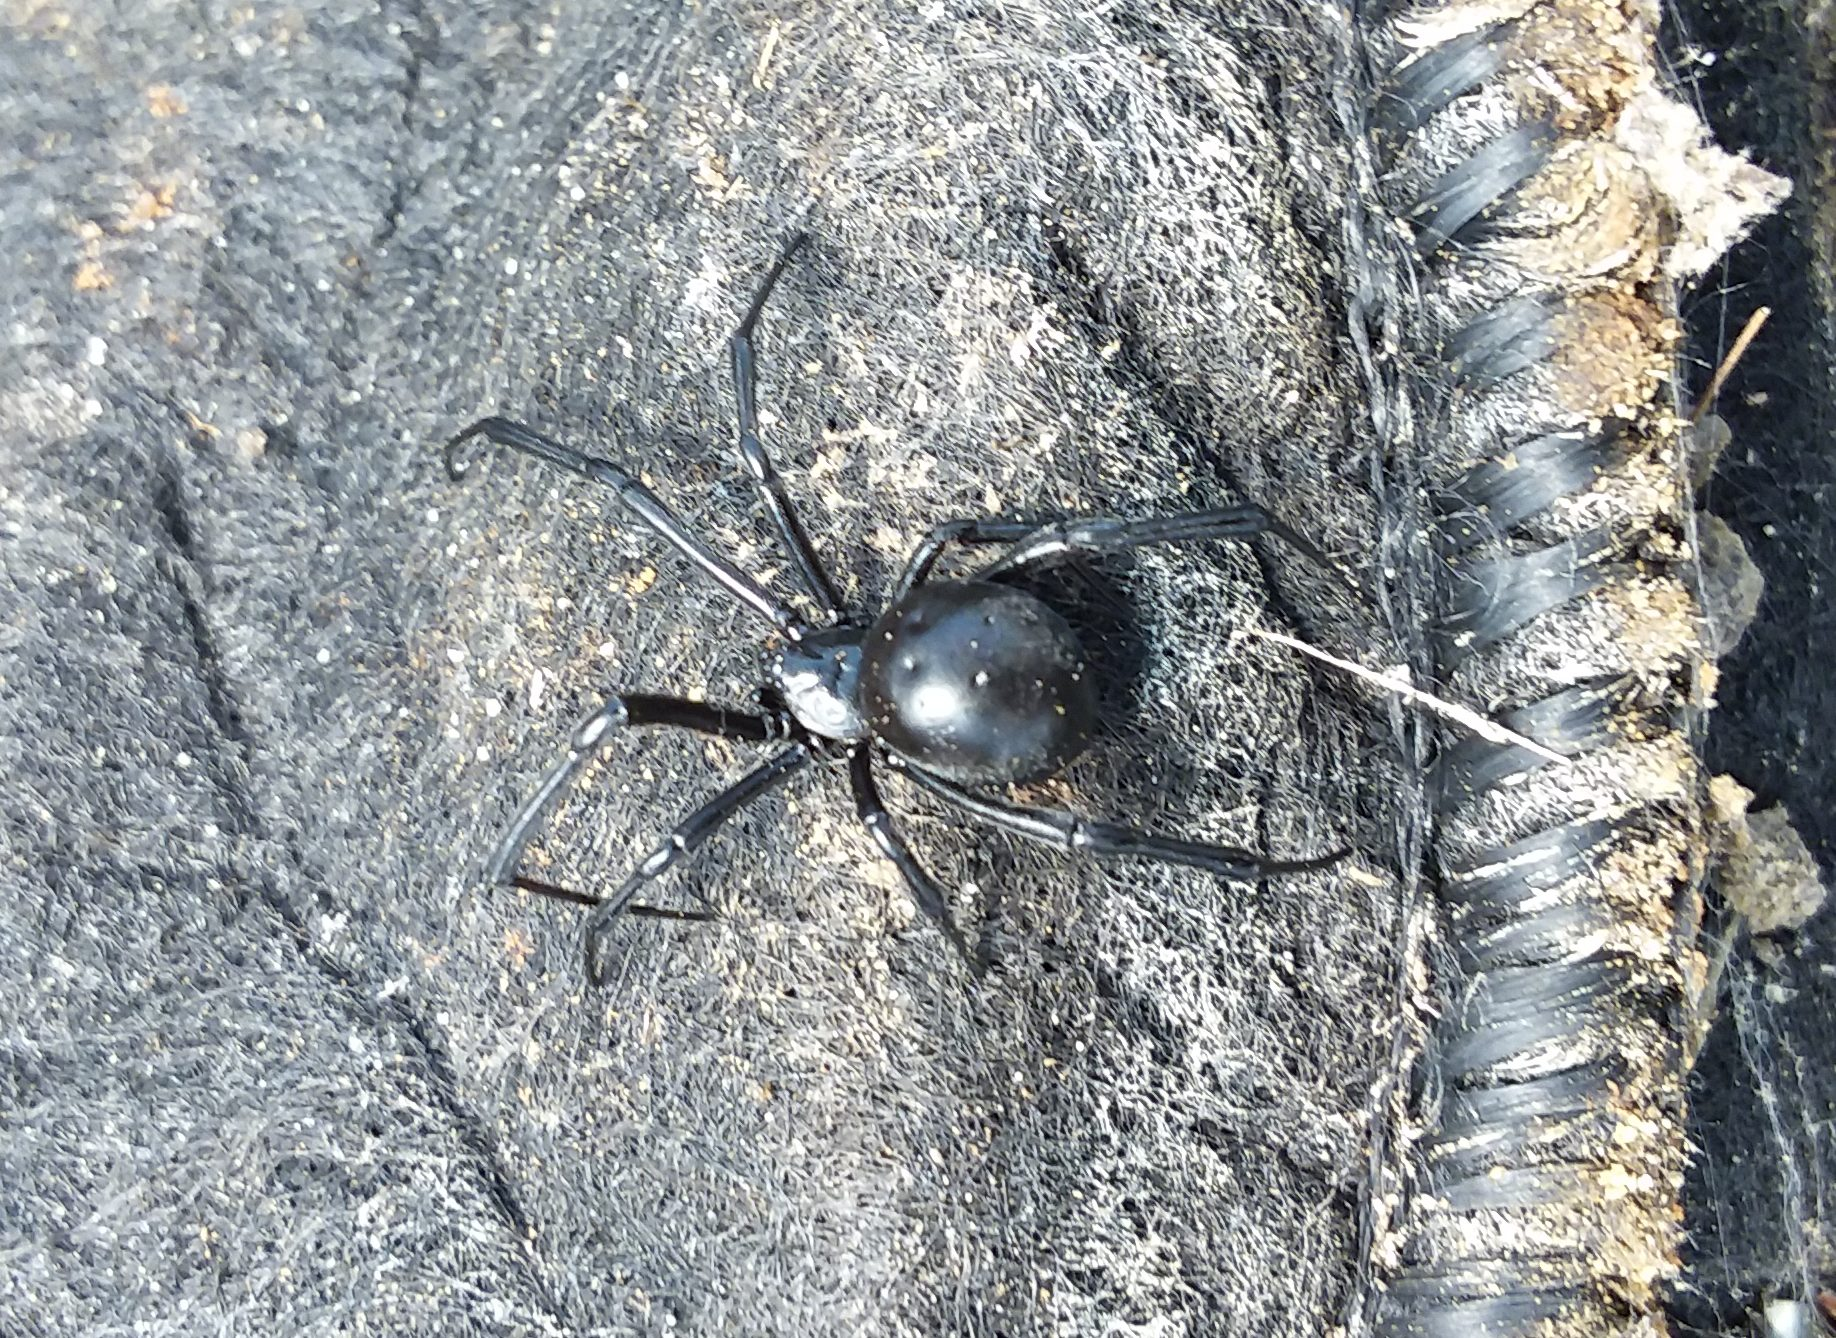 Found this one-inch black widow living among the smart pots in my greenhouse.